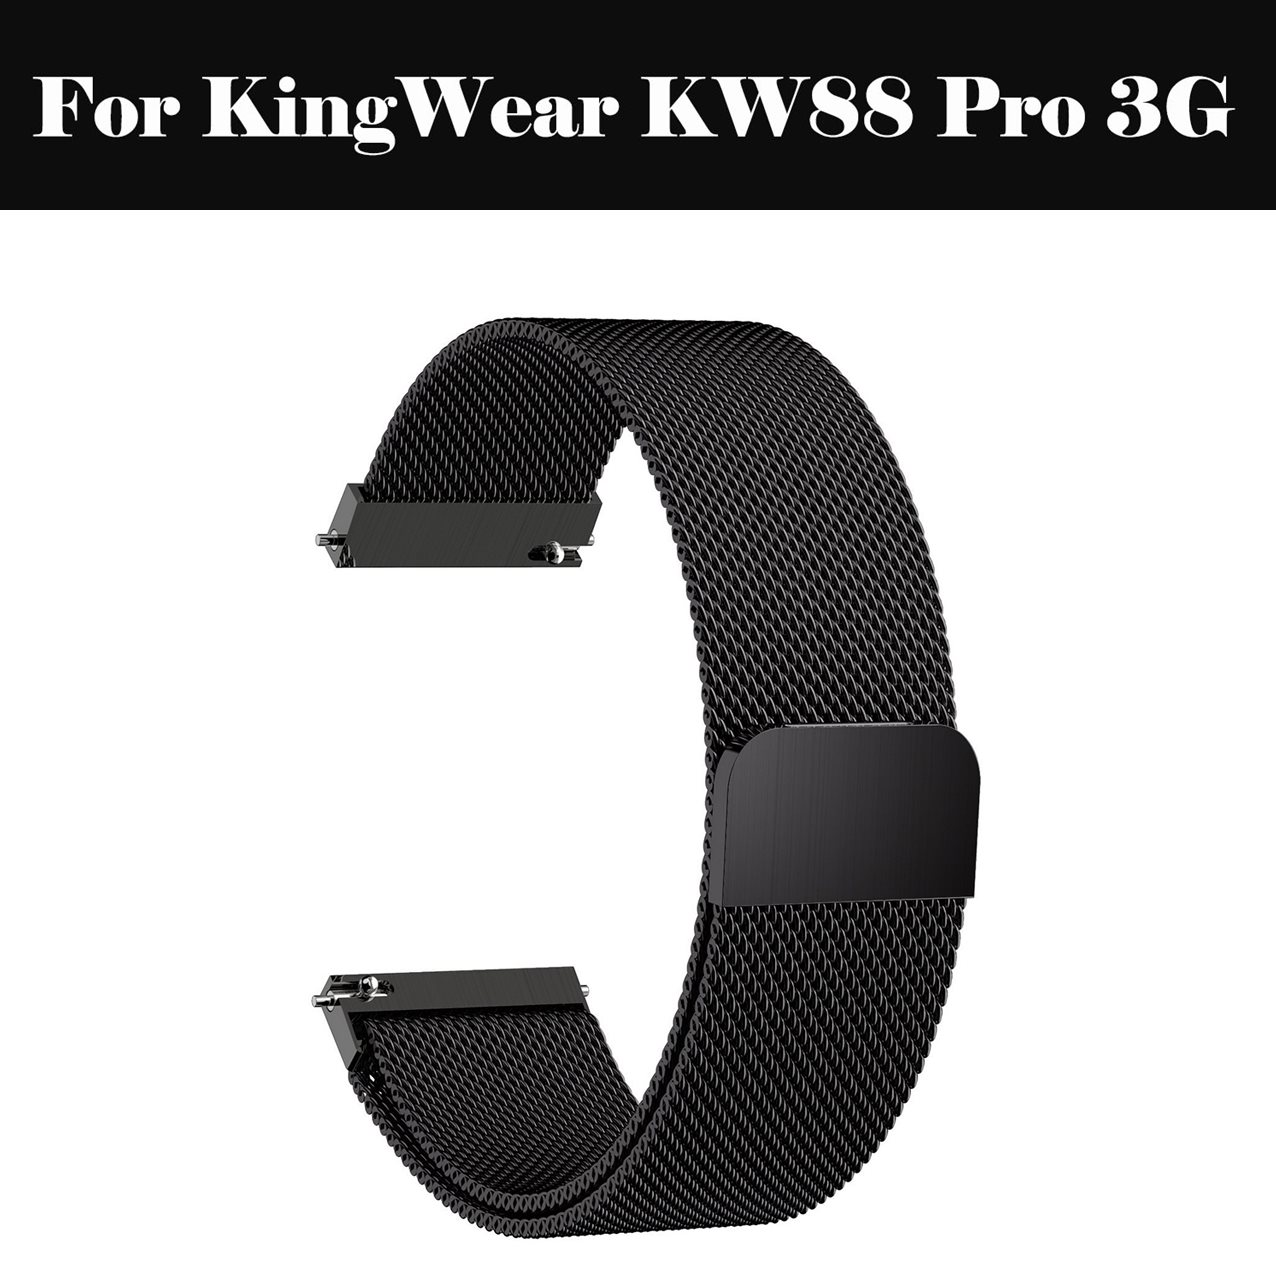 Milanese Loop Bracelet Stainless Steel <font><b>band</b></font> 22mm 20mm 18mm Bracelet strap For KingWear <font><b>KW88</b></font> Pro 3G image